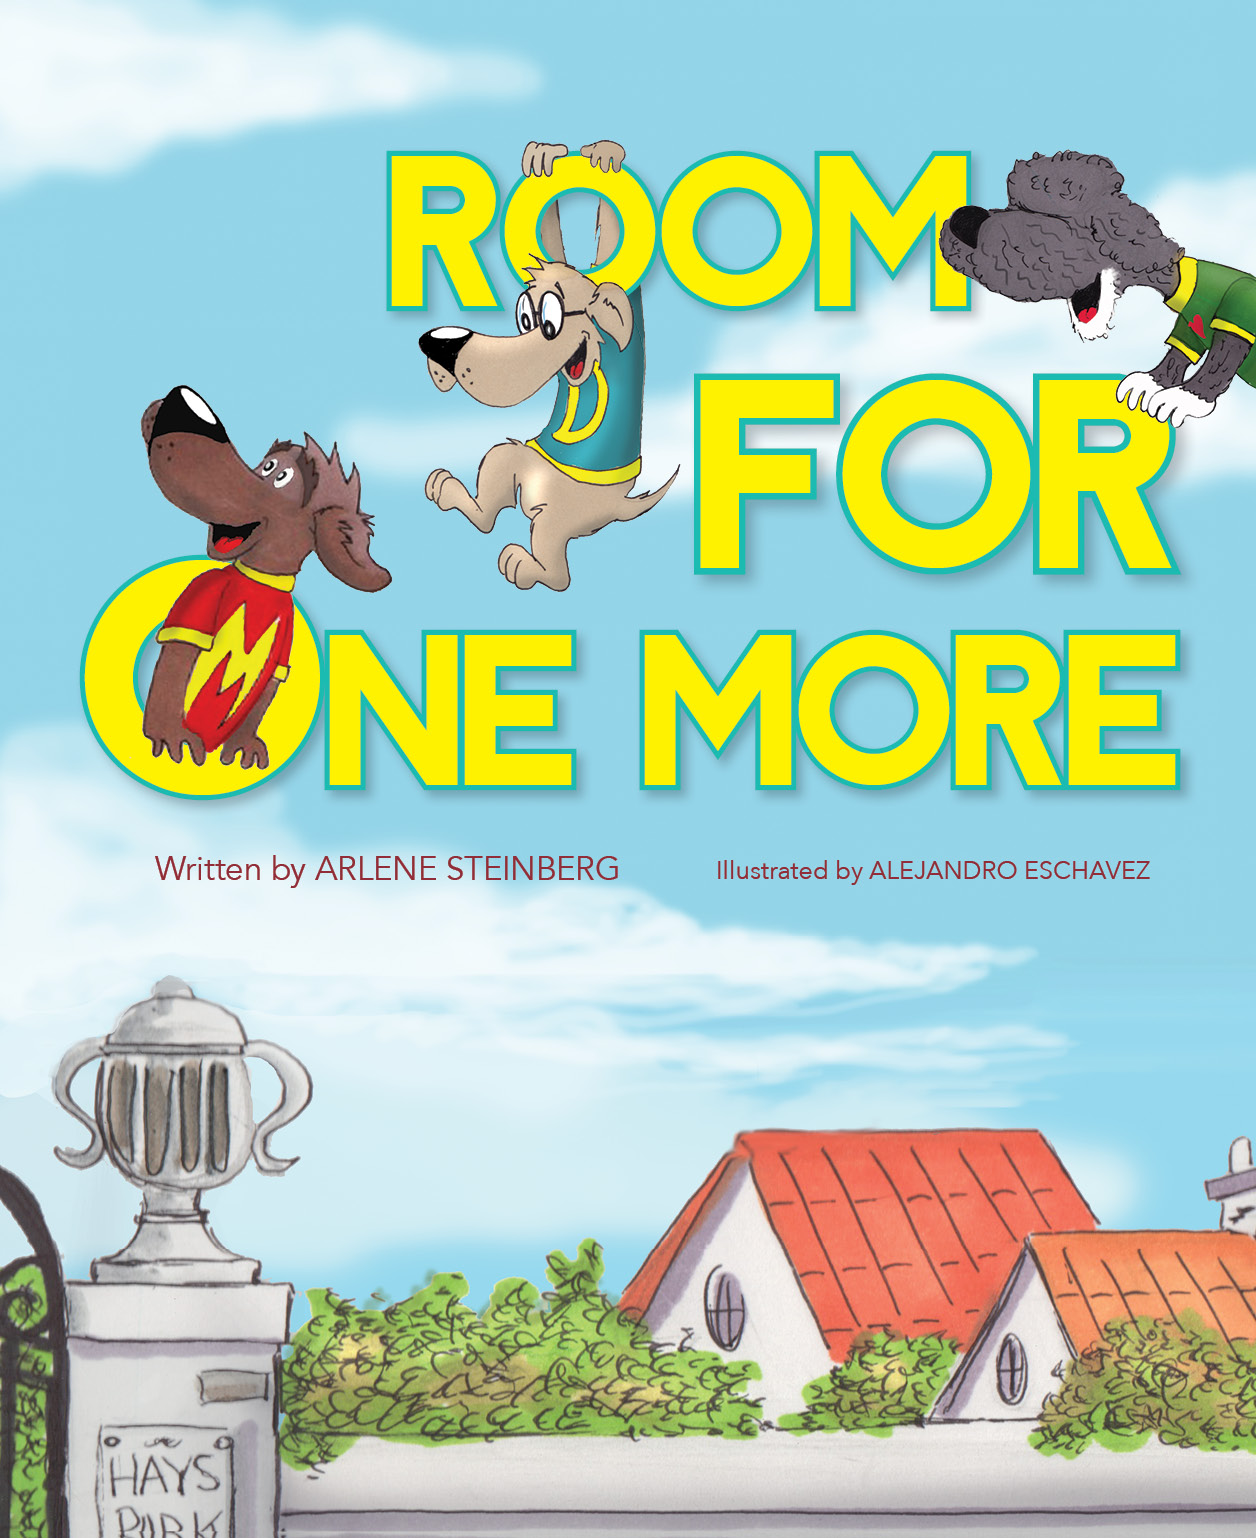 RoomforOneMore_Amazon